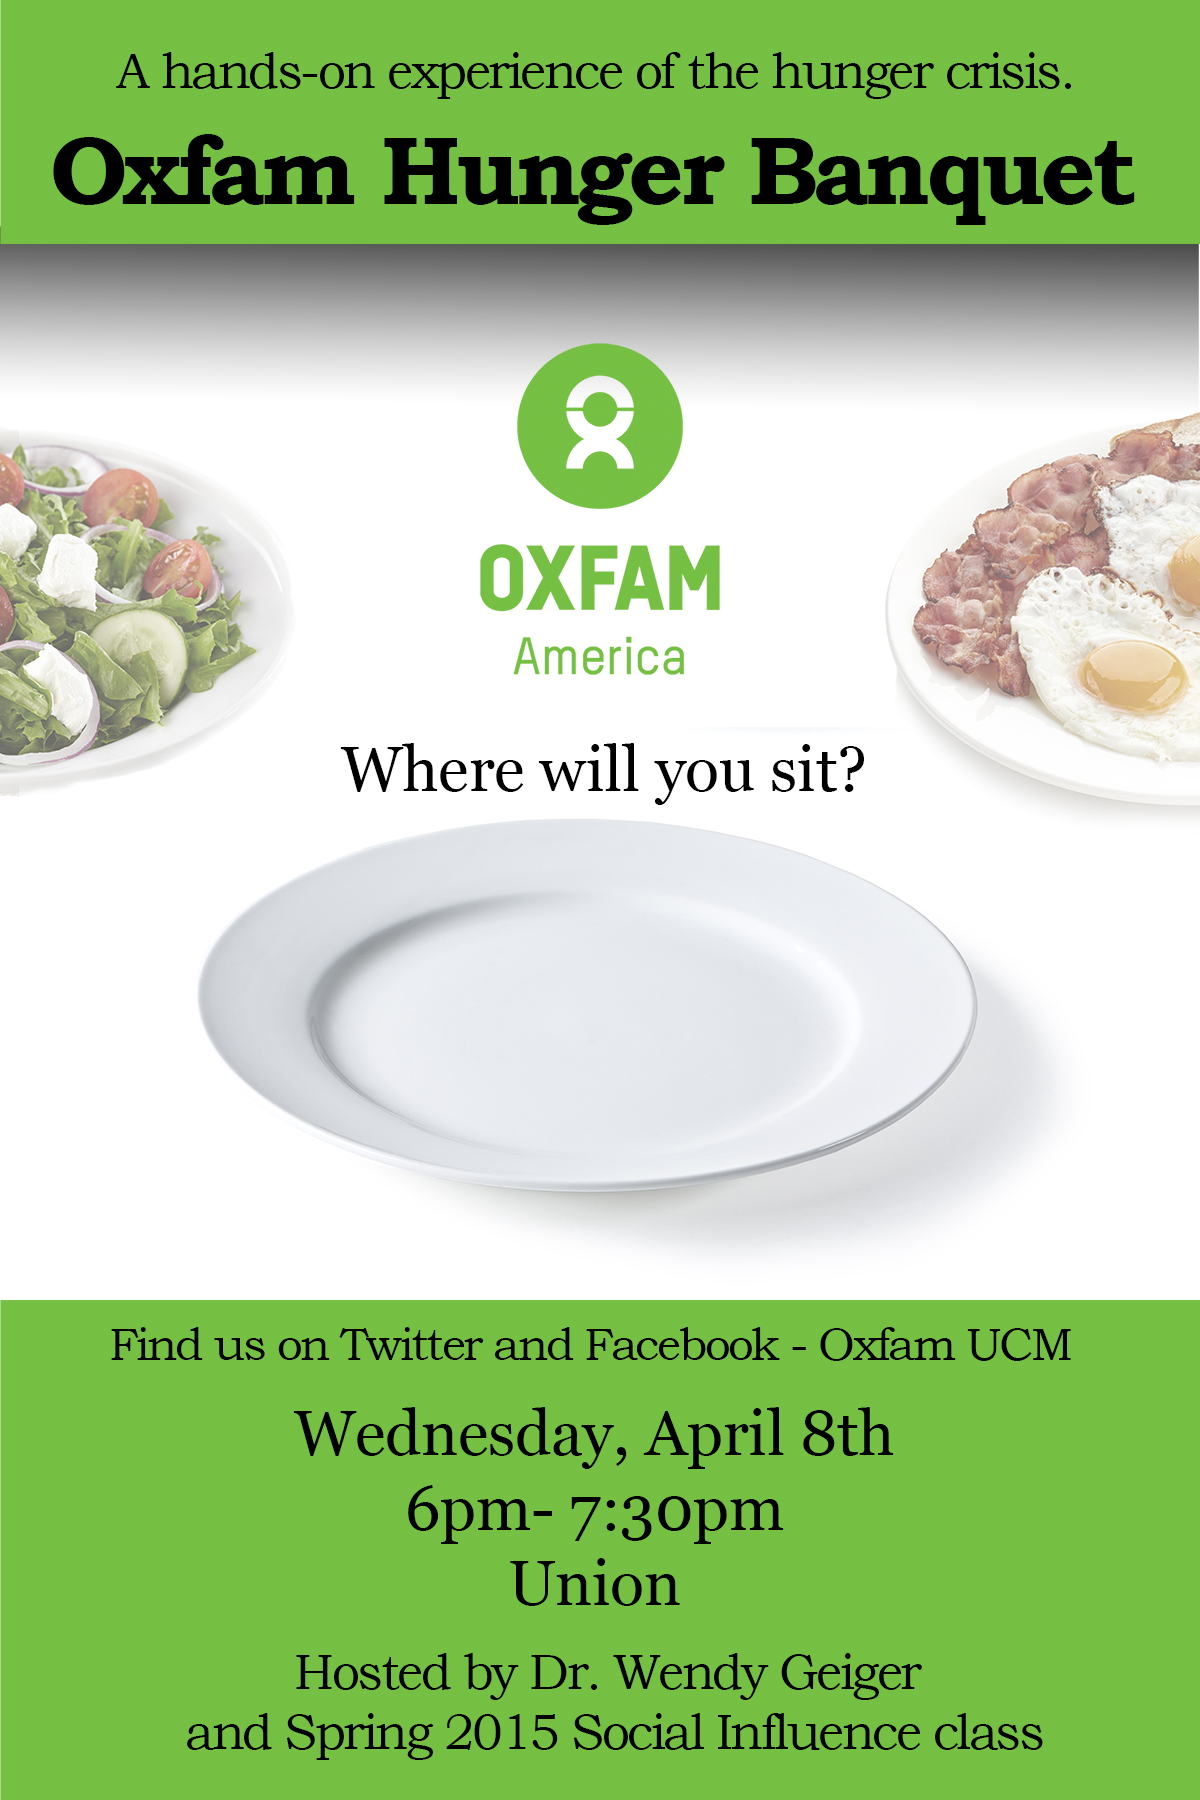 Oxfam banquet coming to UCM